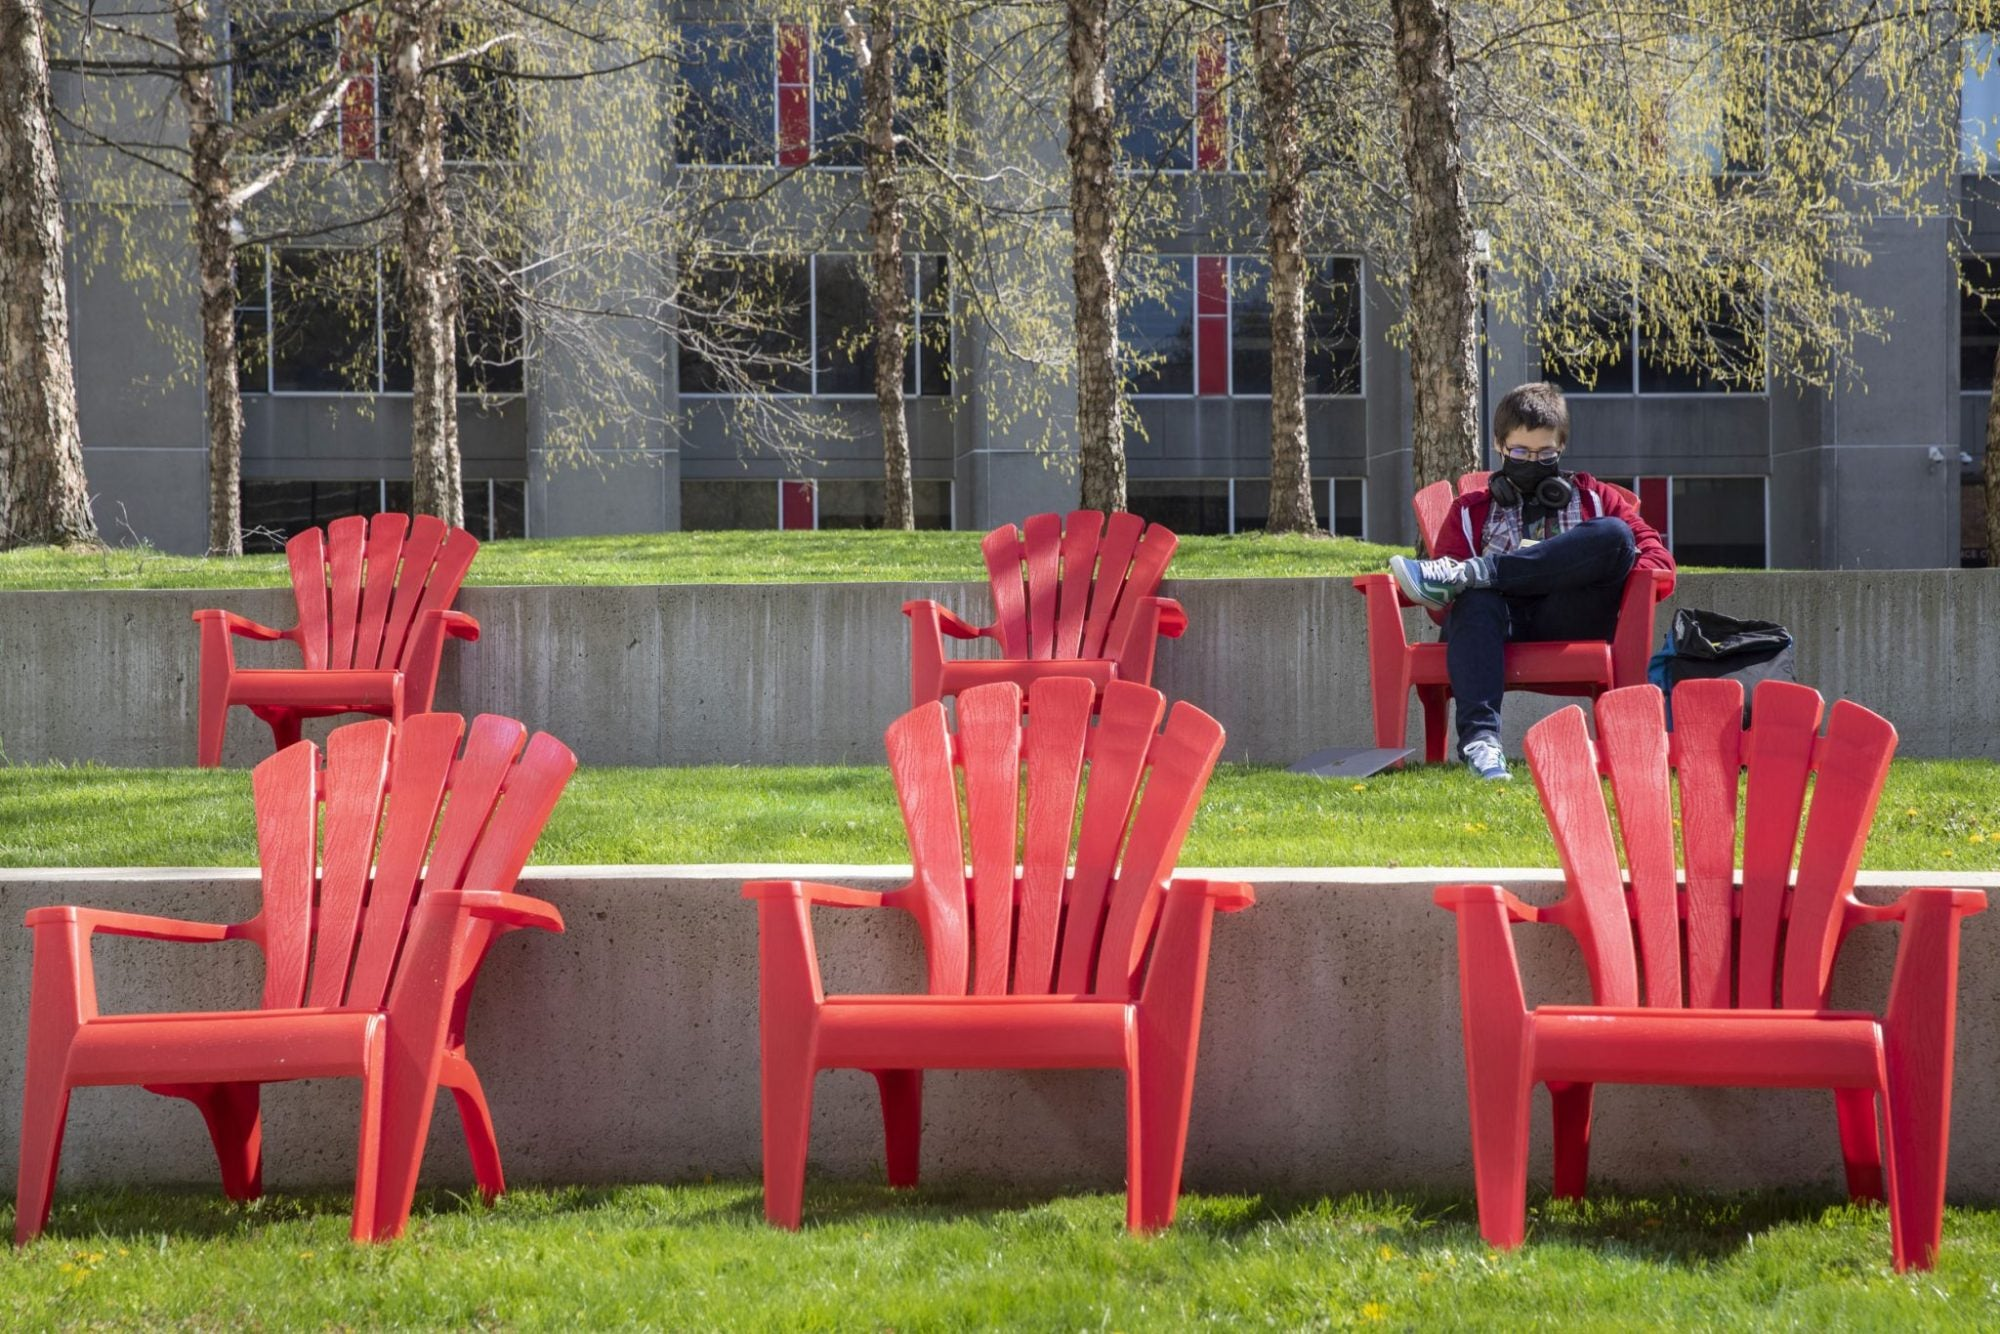 A person reading in a chair